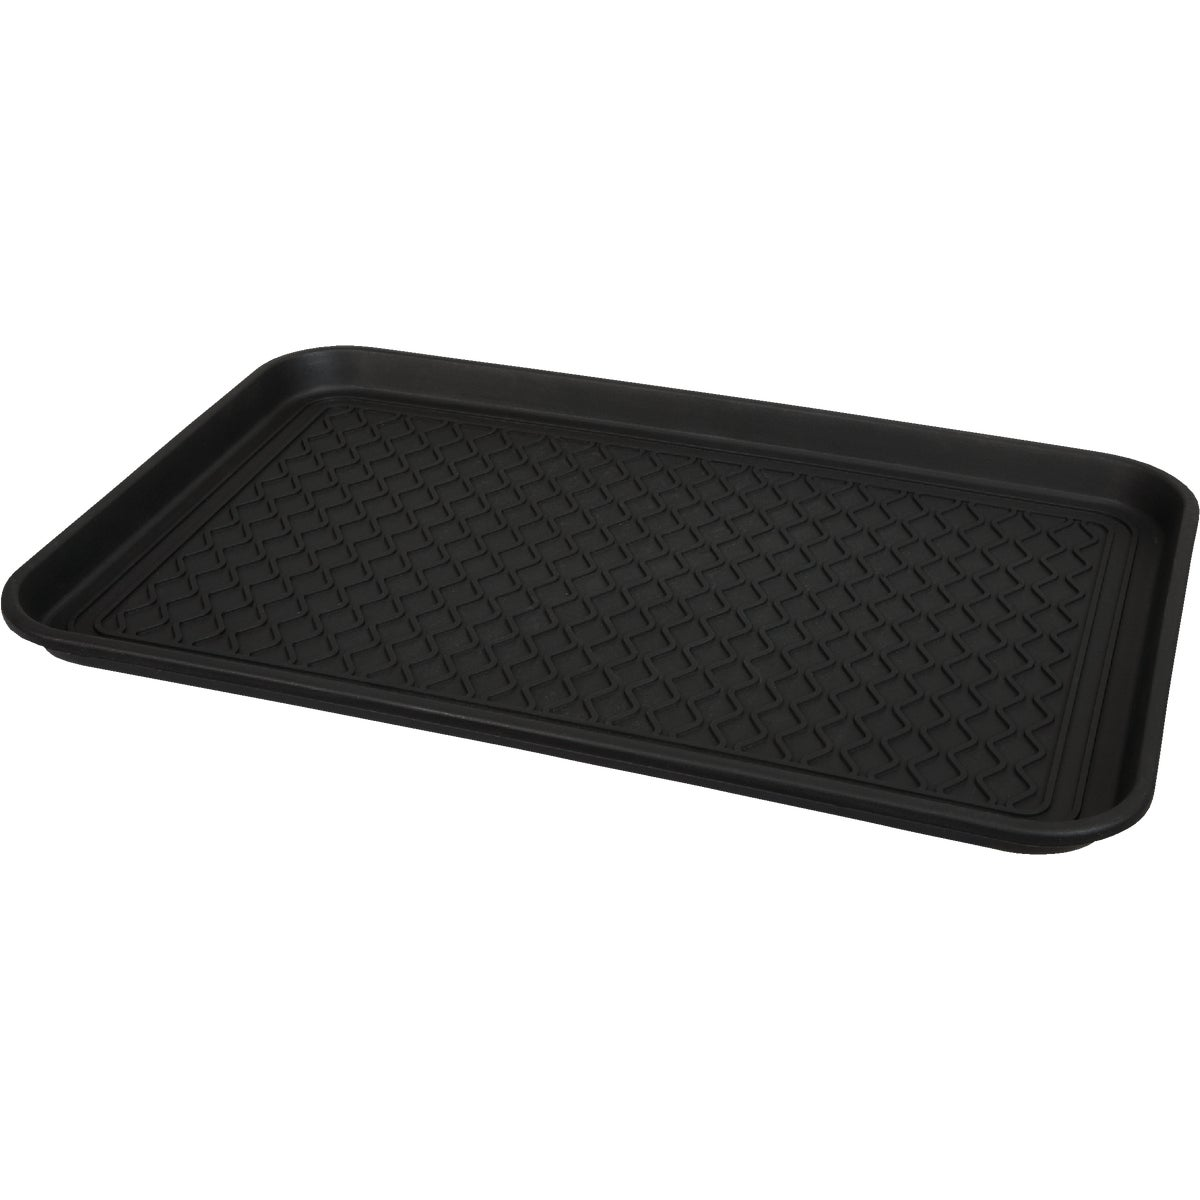 14X24 BLACK BOOT TRAY - OLK1424 by Dennis W J & Co